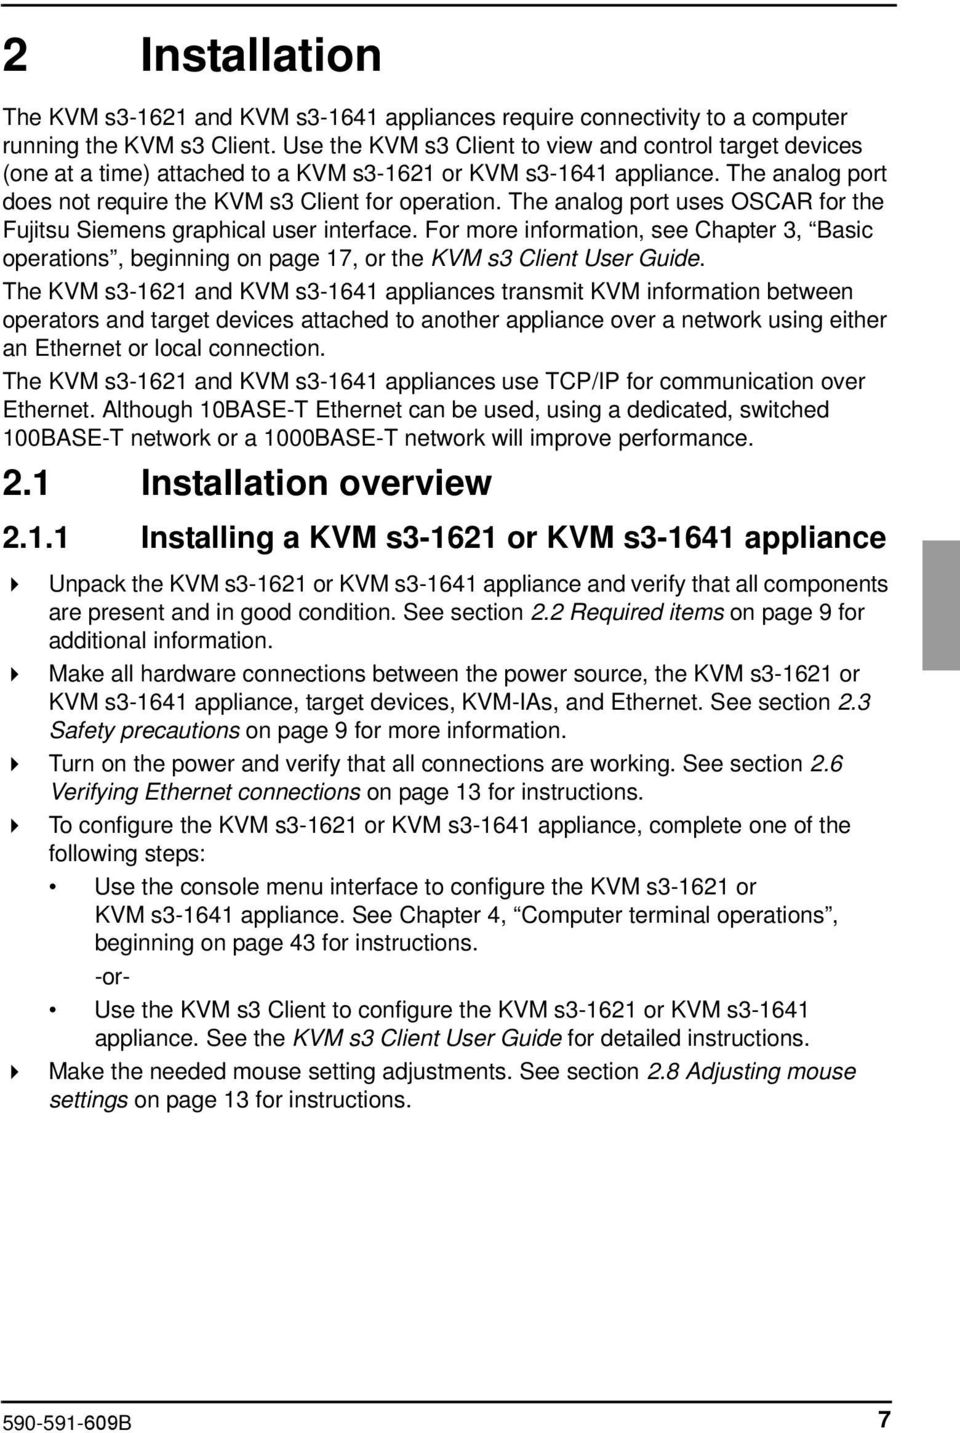 The analog port uses OSCAR for the Fujitsu Siemens graphical user interface. For more information, see Chapter 3, Basic operations, beginning on page 17, or the KVM s3 Client User Guide.